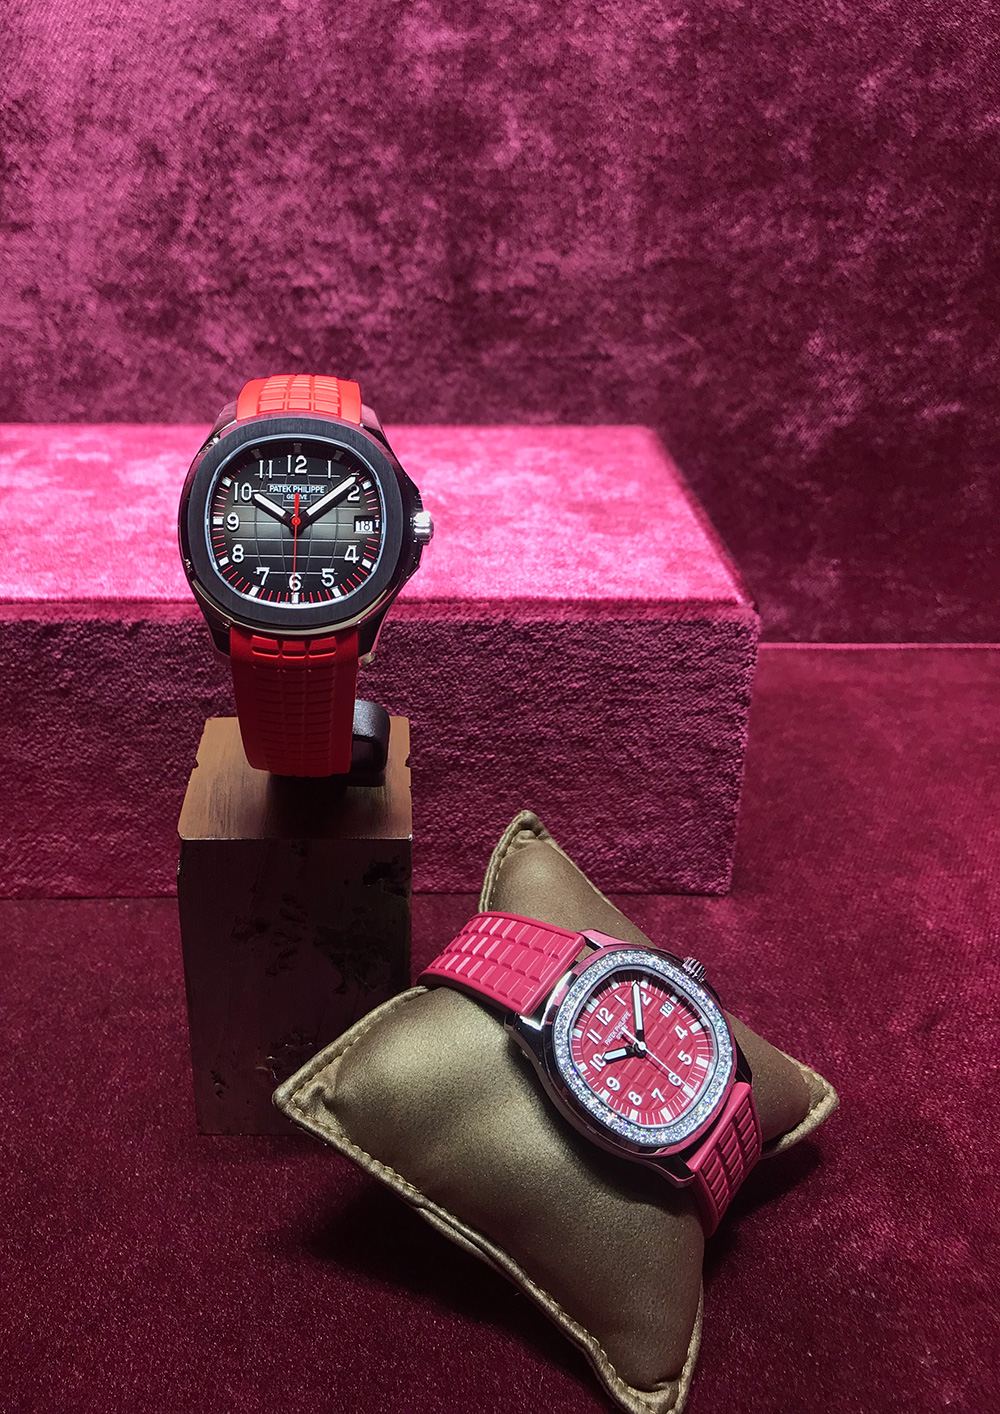 Two of the new special edition watches